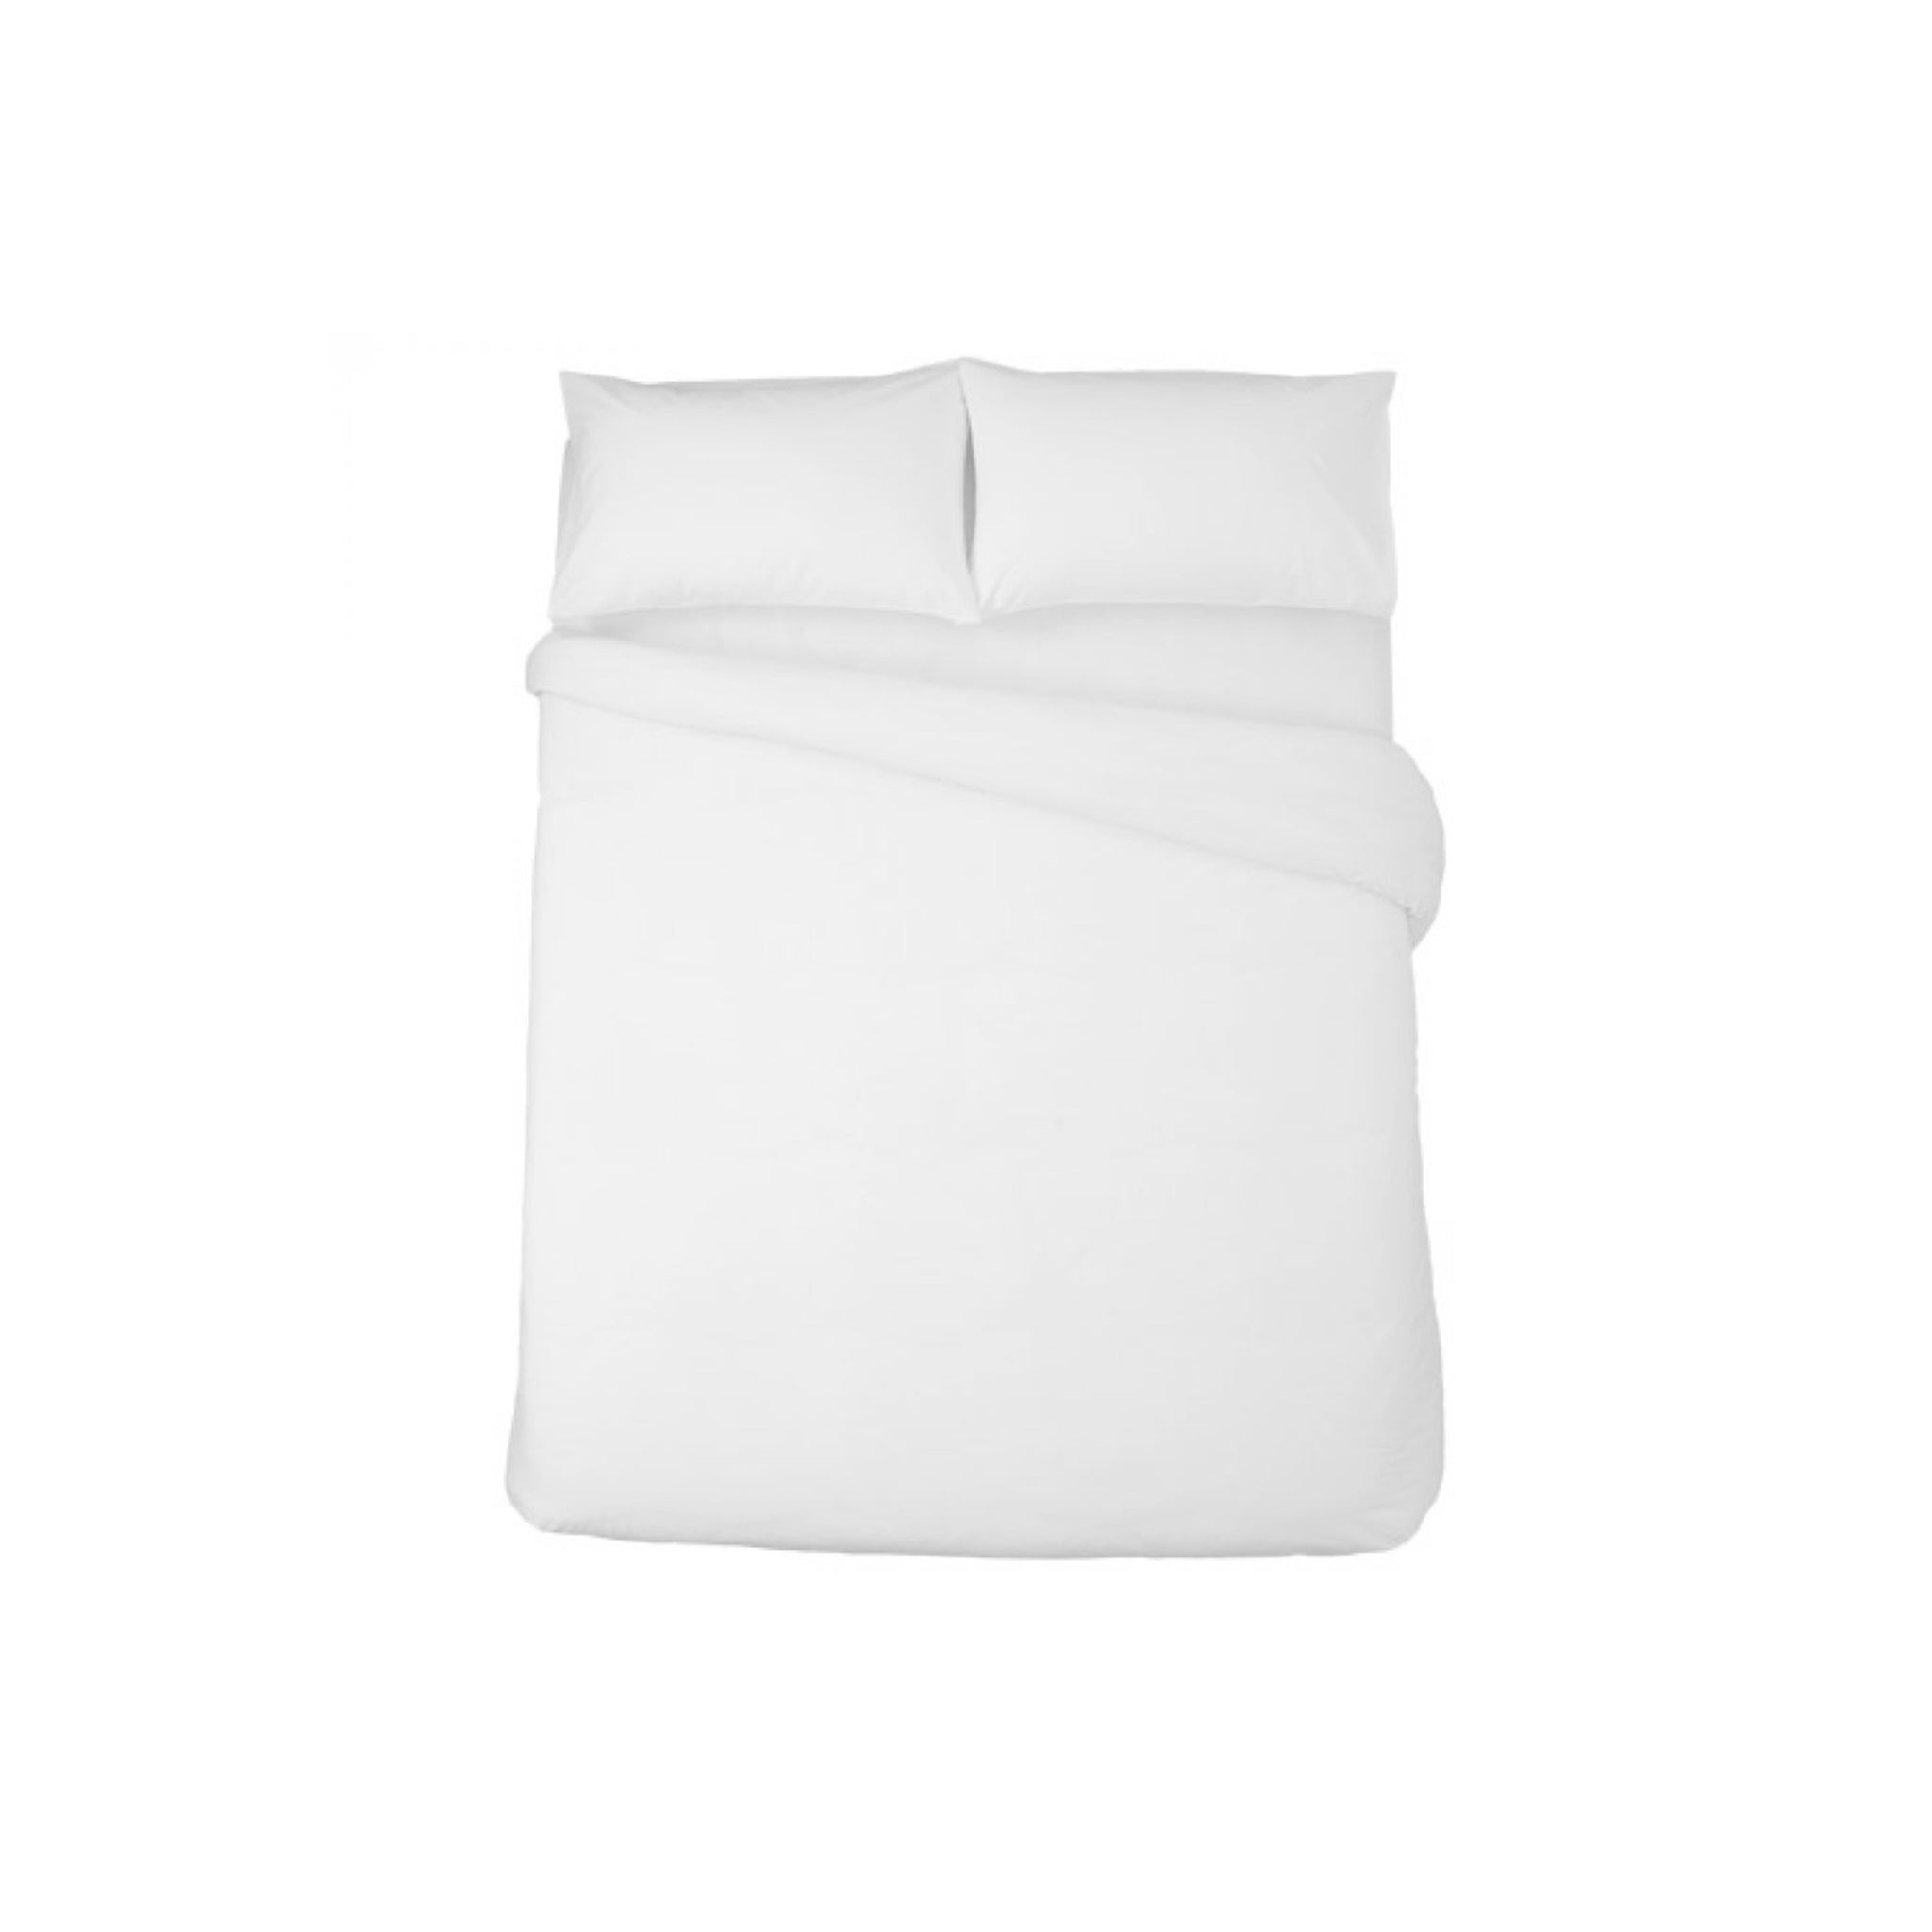 Duvet set - Customise your own linen